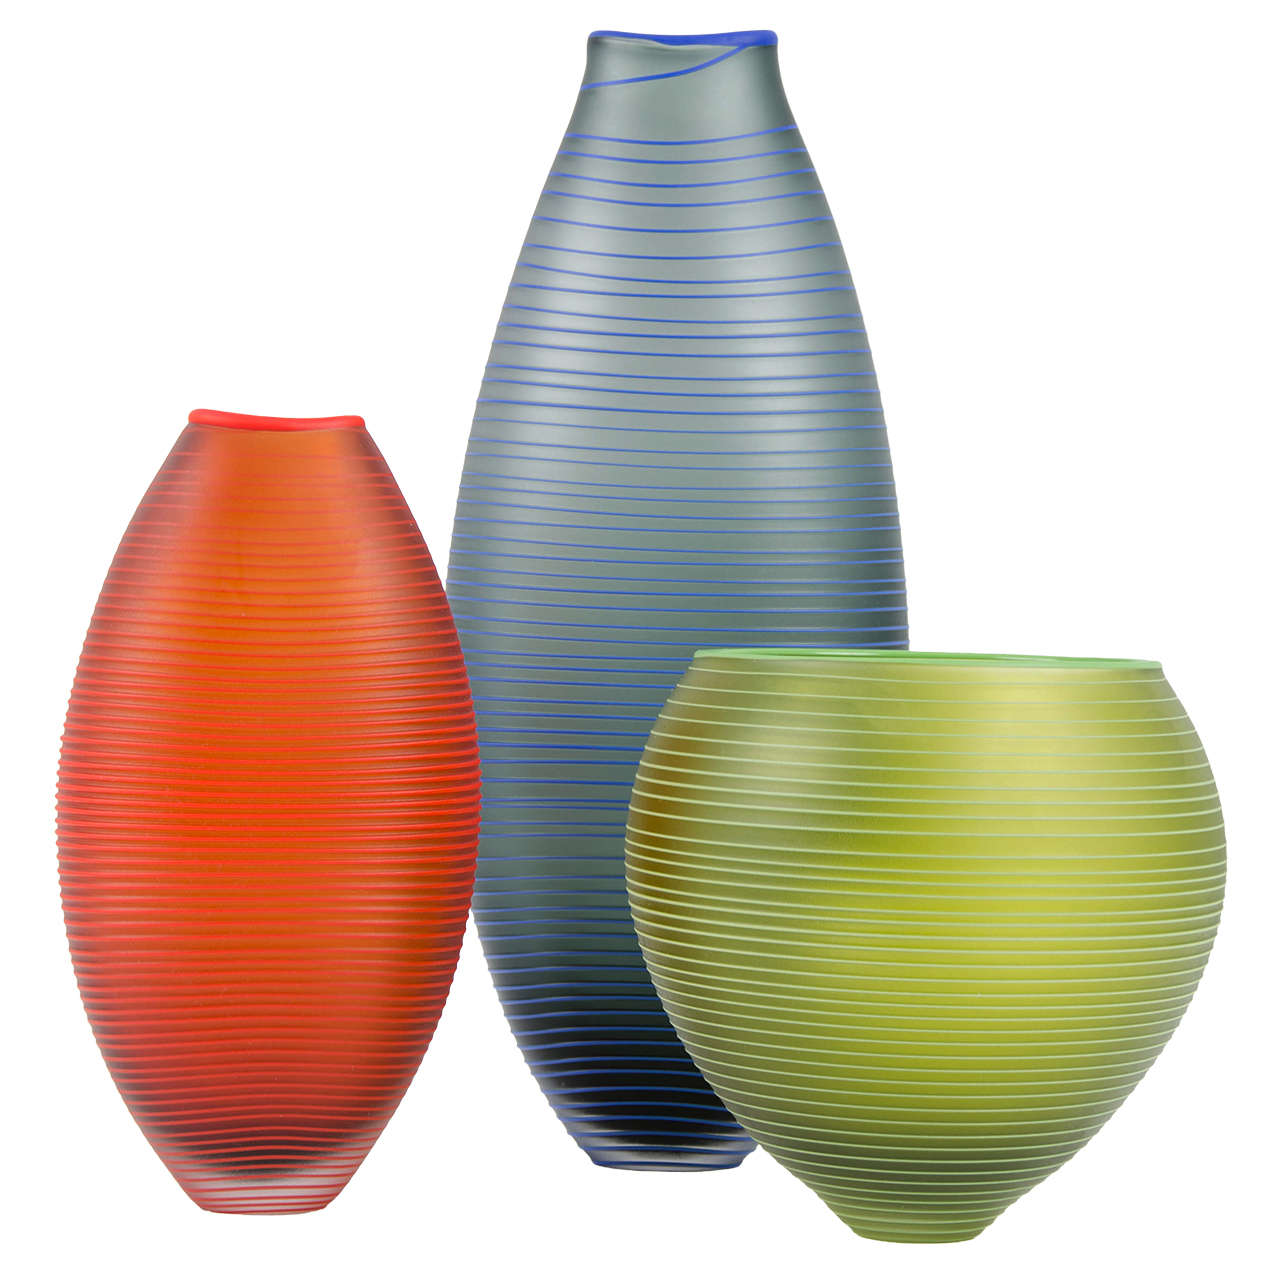 Modern Tonal Frequency Vase in Grey, a unique glass vase in grey & blue by Liam Reeves For Sale